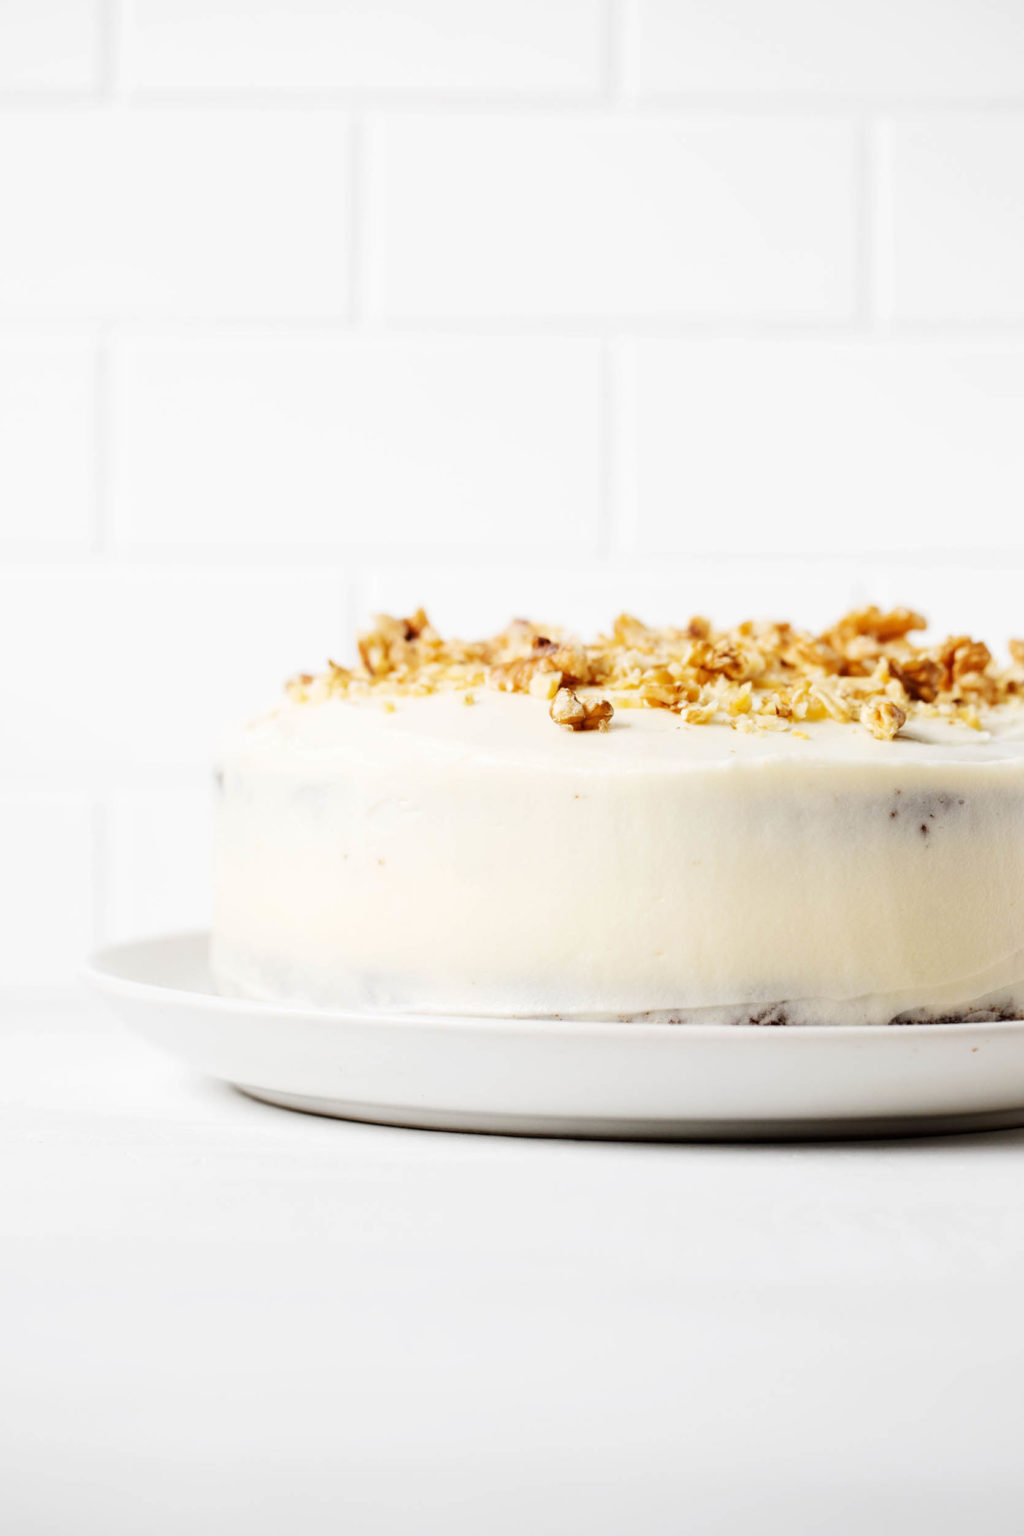 An angled photograph of a cake, which has been decorated with white frosting and chopped walnuts. It's resting on a white surface and against a white brick backdrop.